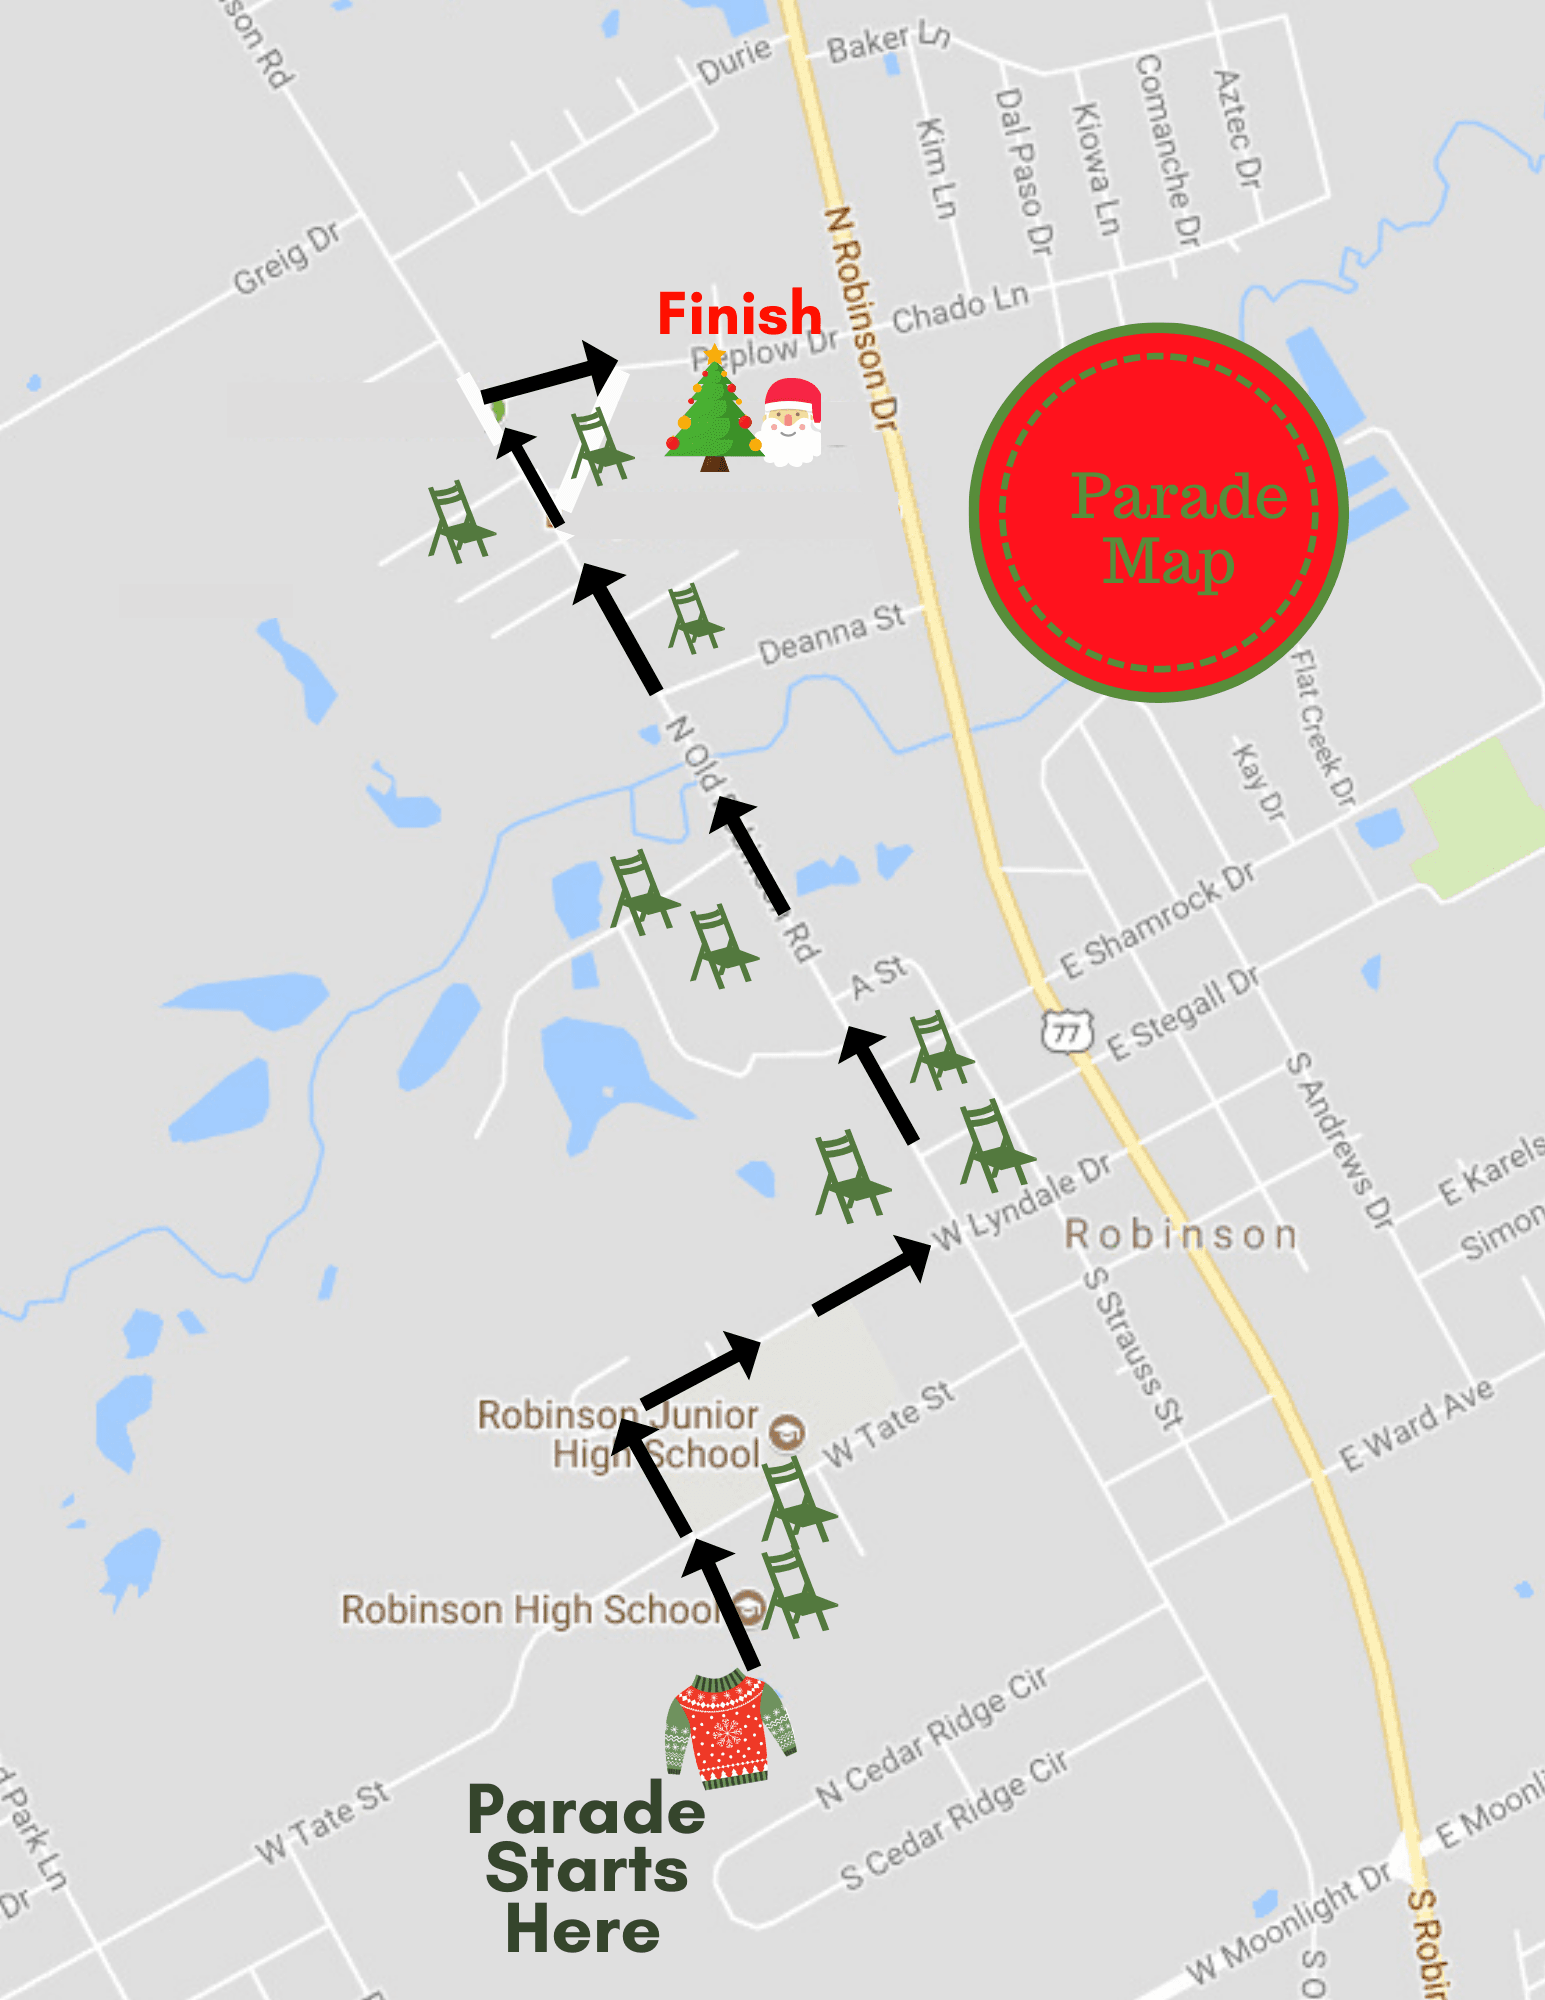 Christmas parade route map with spectator locations. Parade starts at Robinson High School on Lyndal